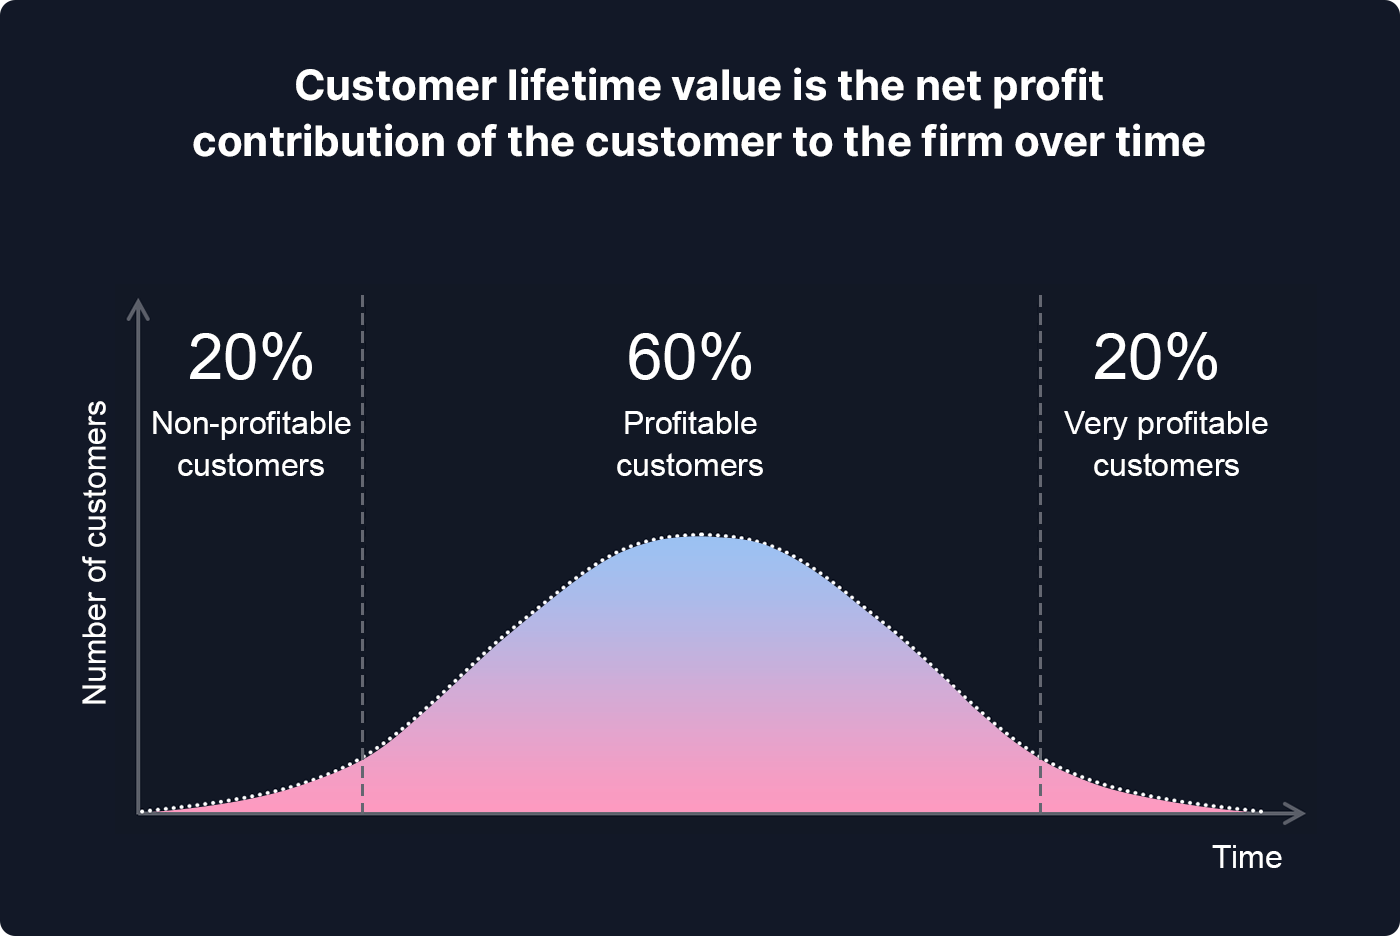 Chart showing that customer lifetime value is the net profit contribution of the customer to the firm over time